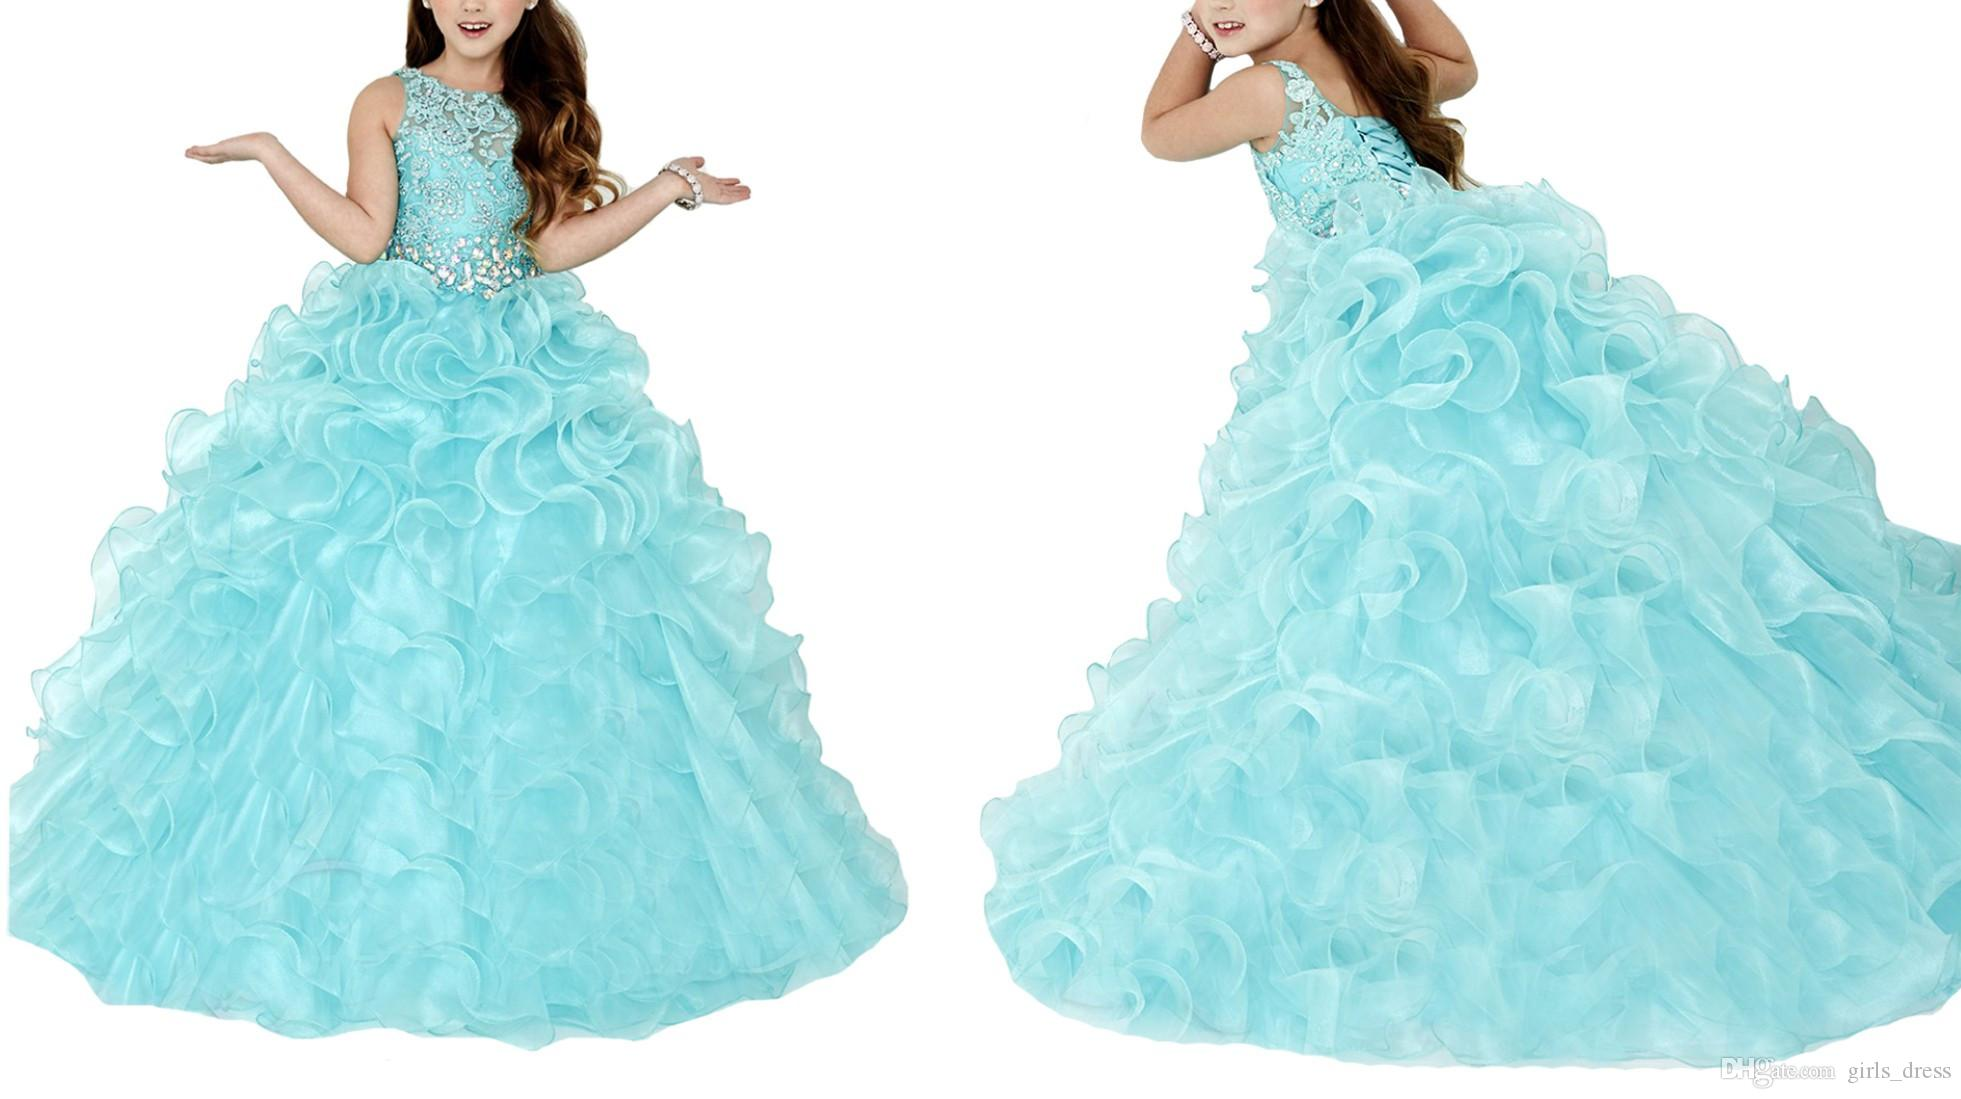 Princess Baby Blue Party Dress For Cute Girl Pageant Dresses Ruffles Organza Sequins Flower Junior Teens Ball Gowns